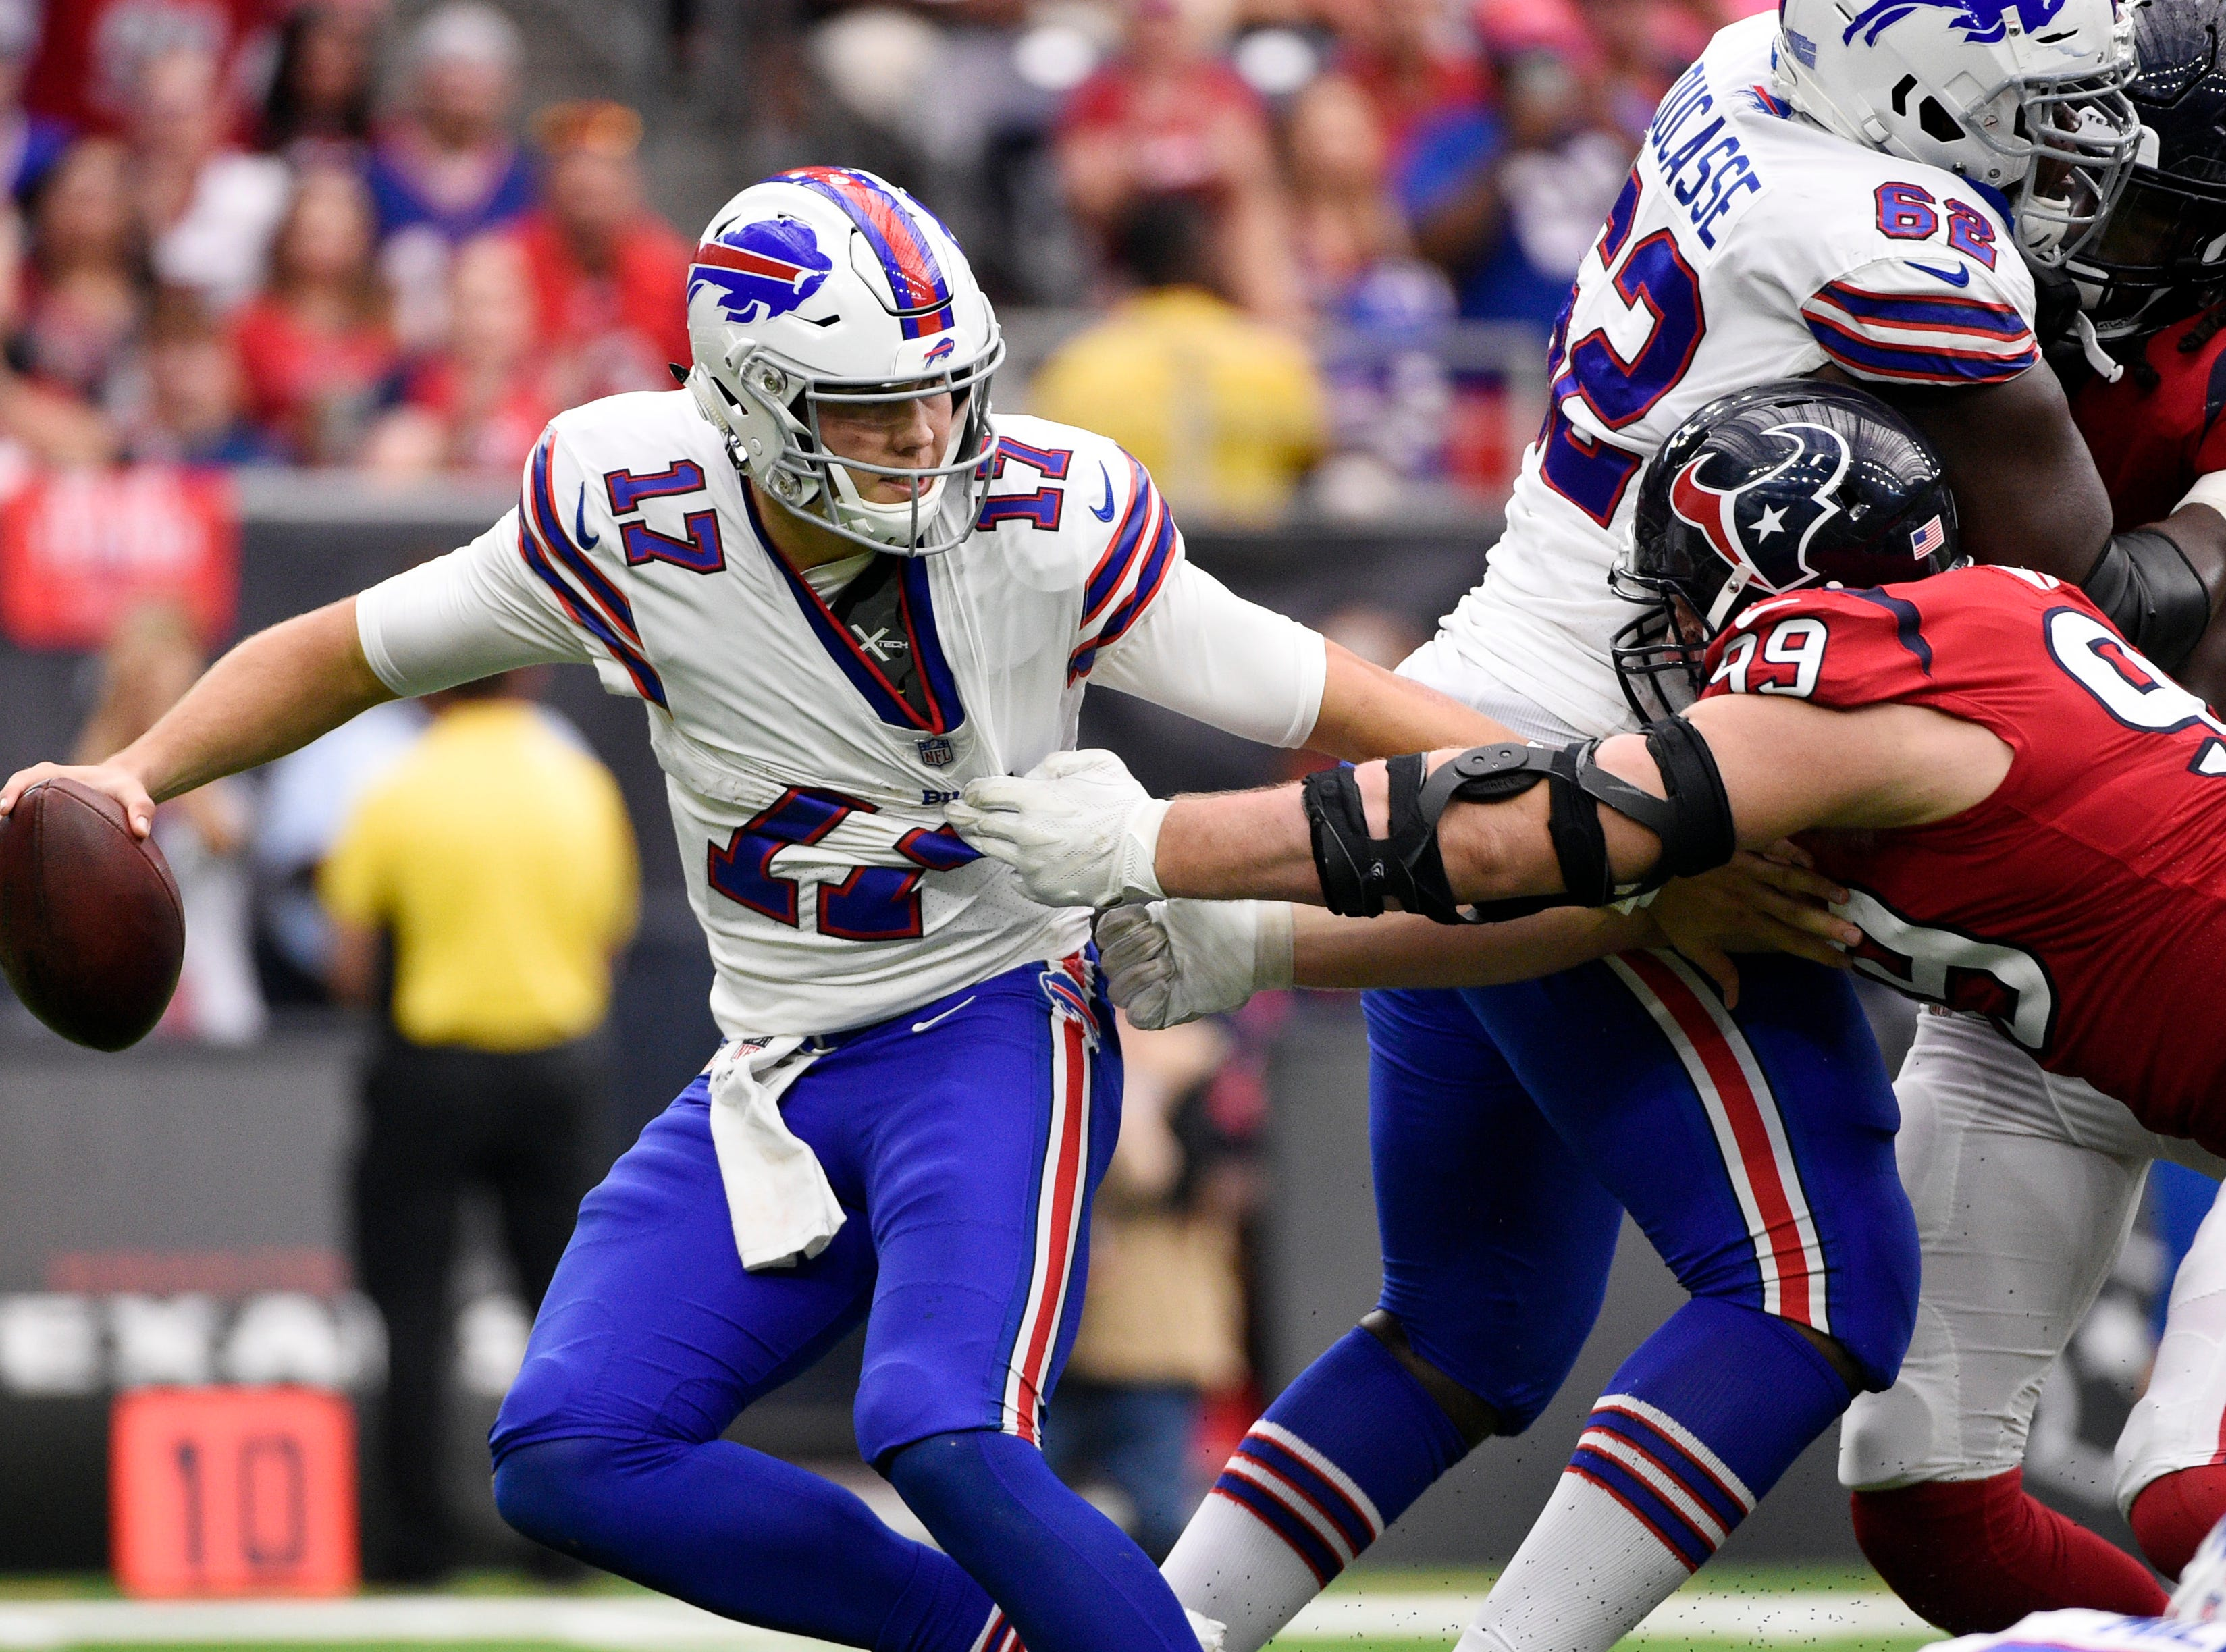 Buffalo Bills quarterback Josh Allen (17) is wrapped up by Houston Texans defensive end J.J. Watt (99) during the second half of an NFL football game, Sunday, Oct. 14, 2018, in Houston. (AP Photo/Eric Christian Smith)